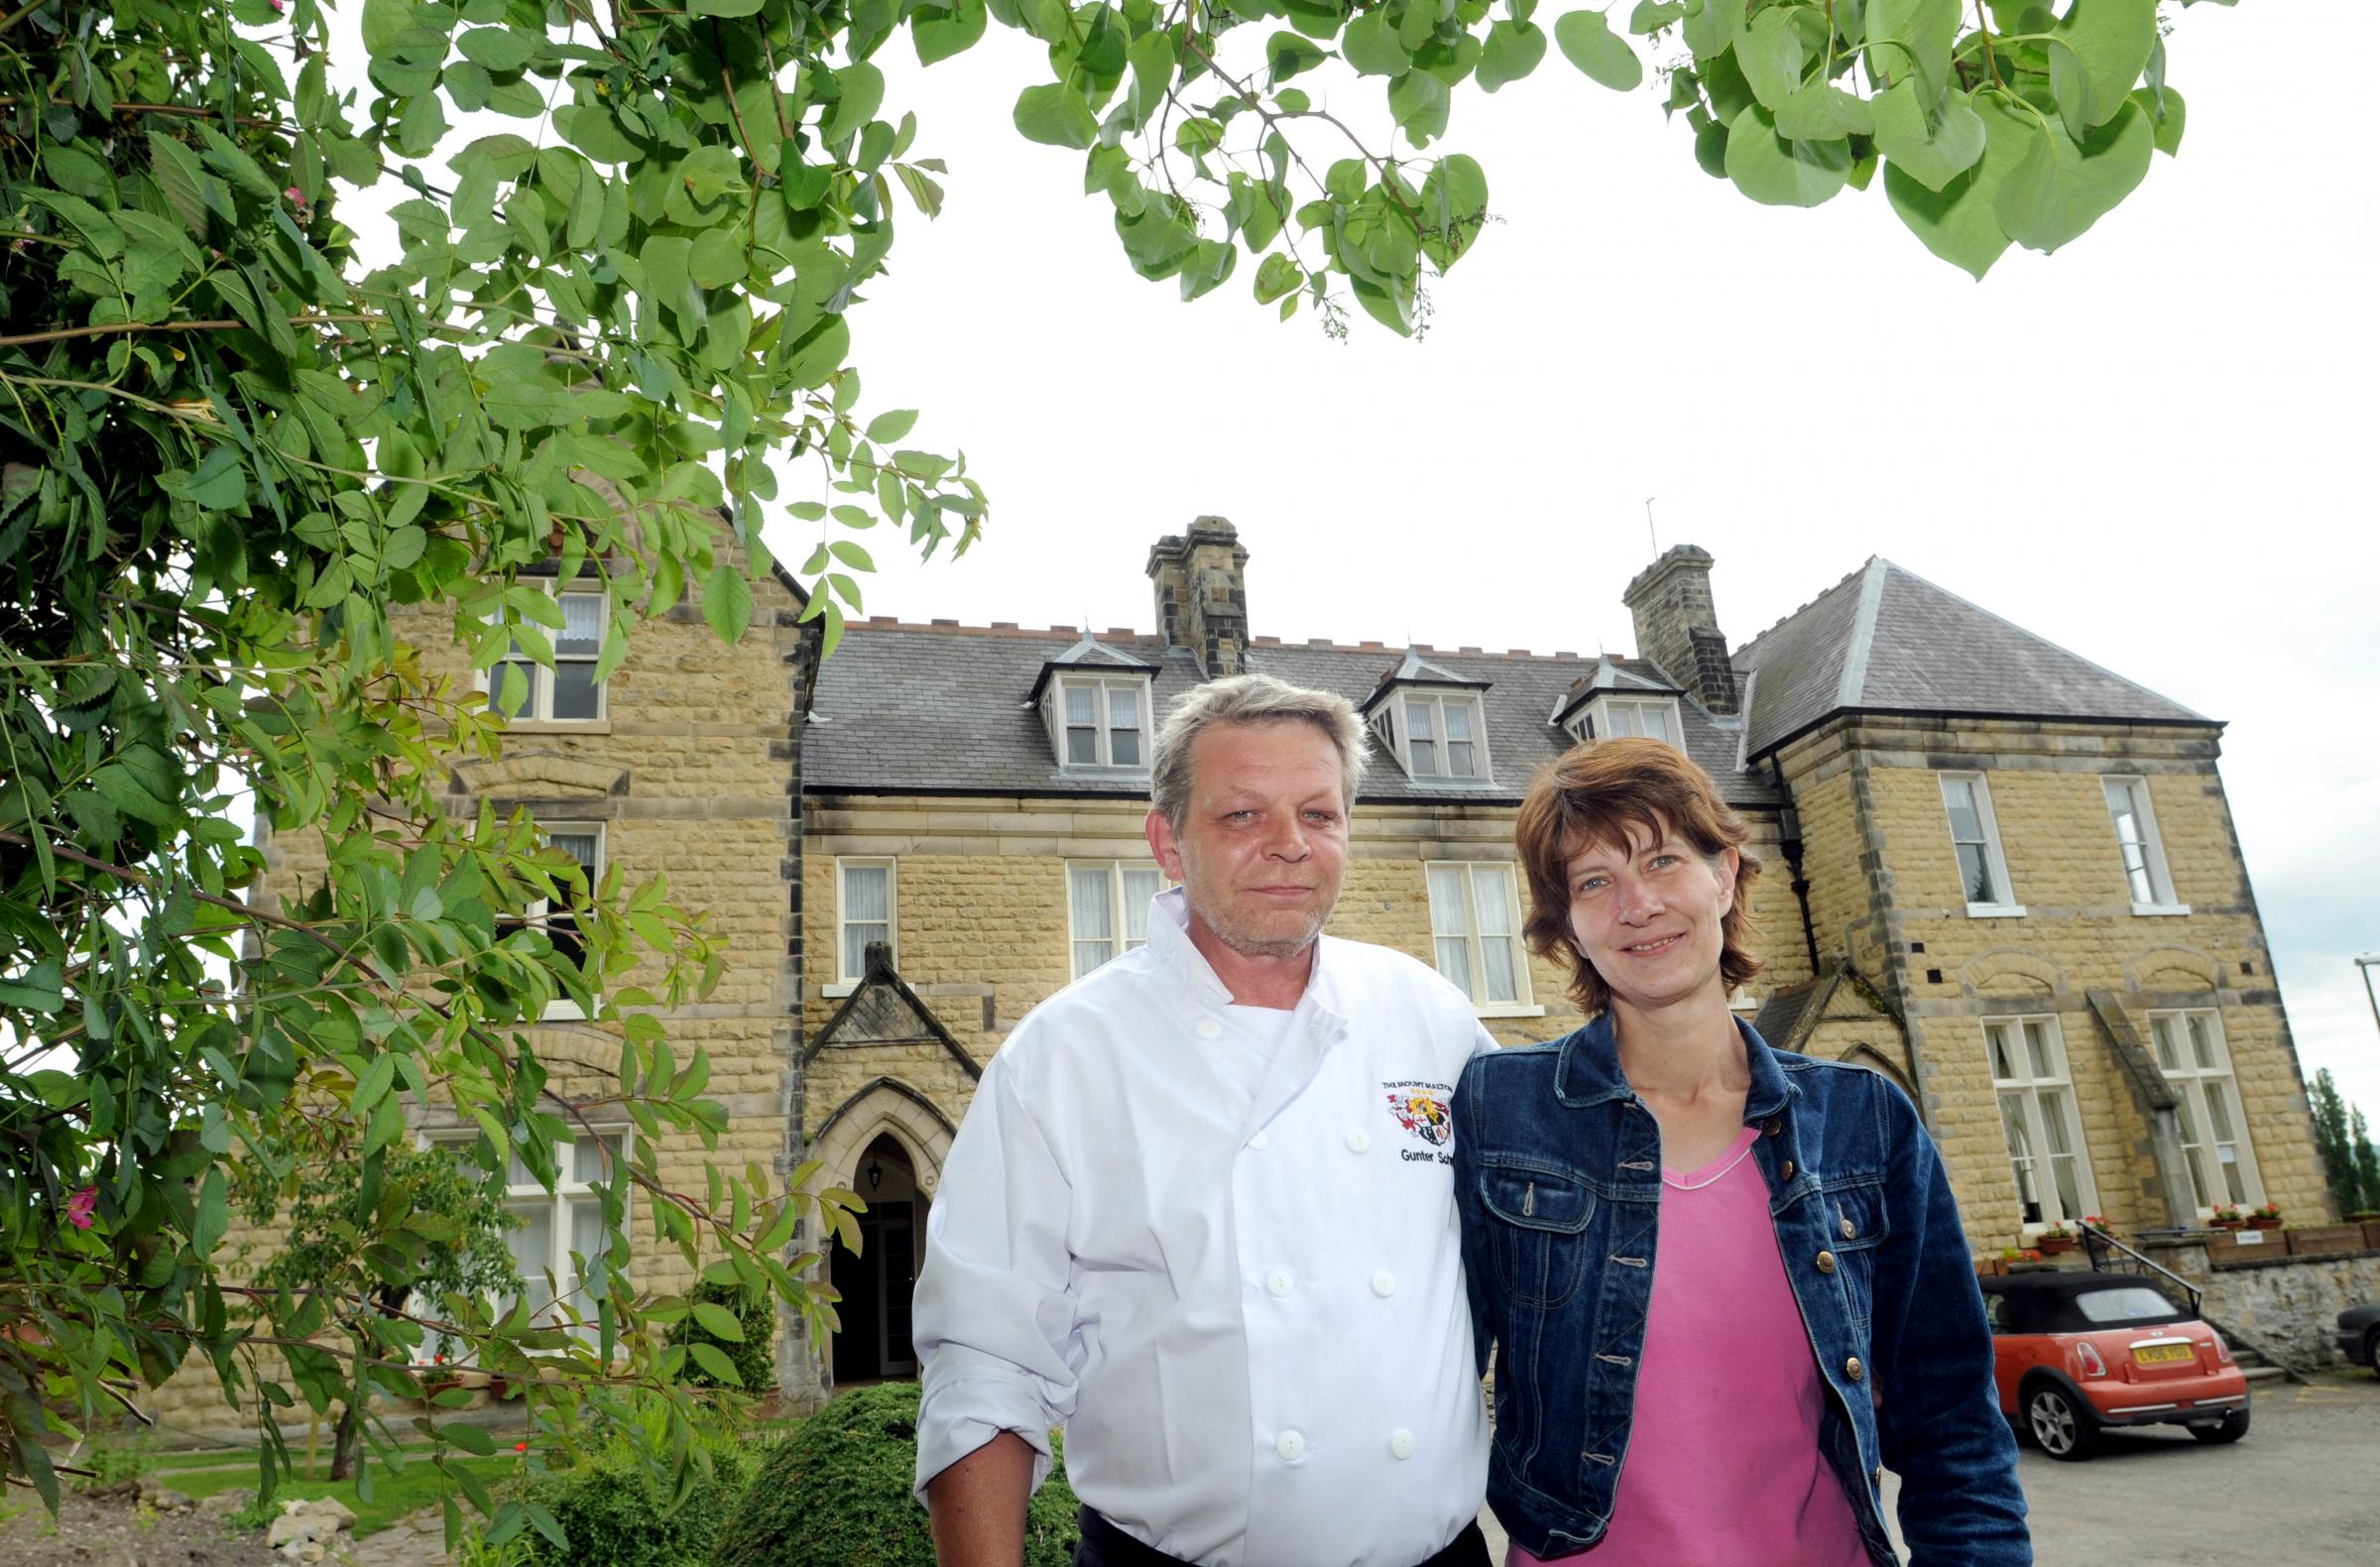 Owners Gunther and Dagmar Schwark at the Mount Hotel in Malton.